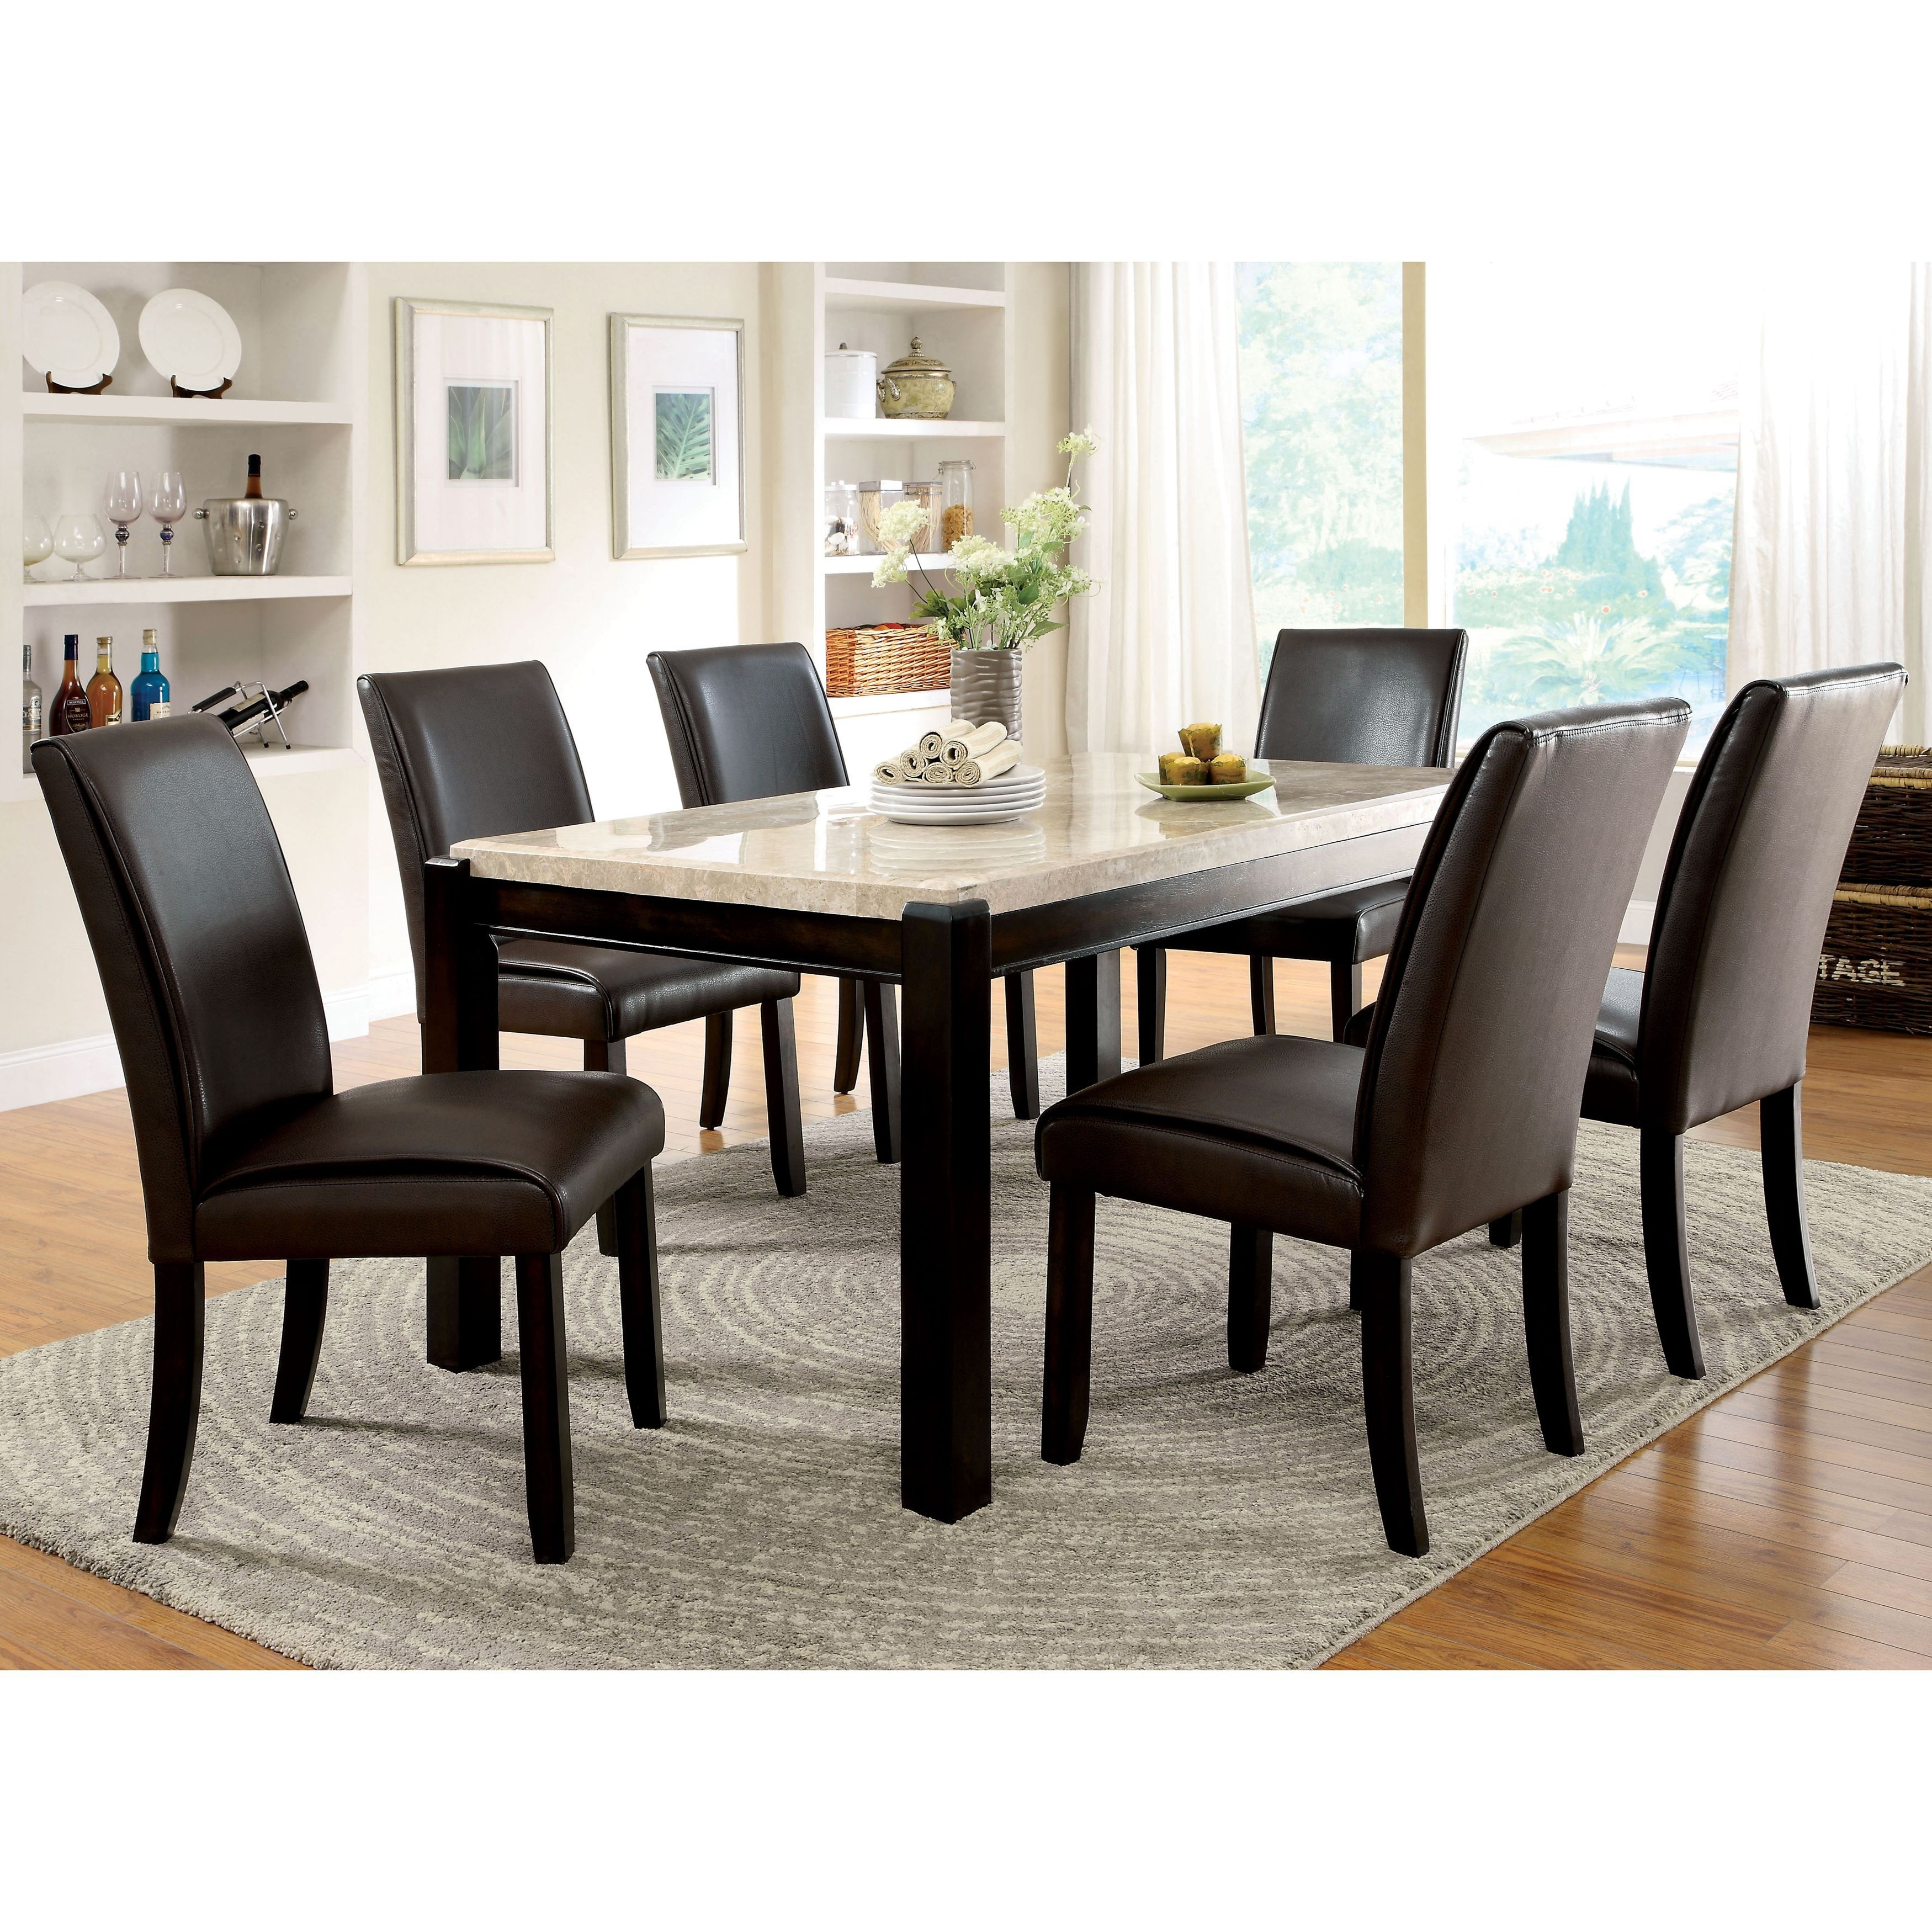 Furniture Of America Joreth 7 Piece Dark Walnut (Brown) Dining Set With Regard To Most Up To Date Palazzo 7 Piece Rectangle Dining Sets With Joss Side Chairs (Photo 4 of 20)